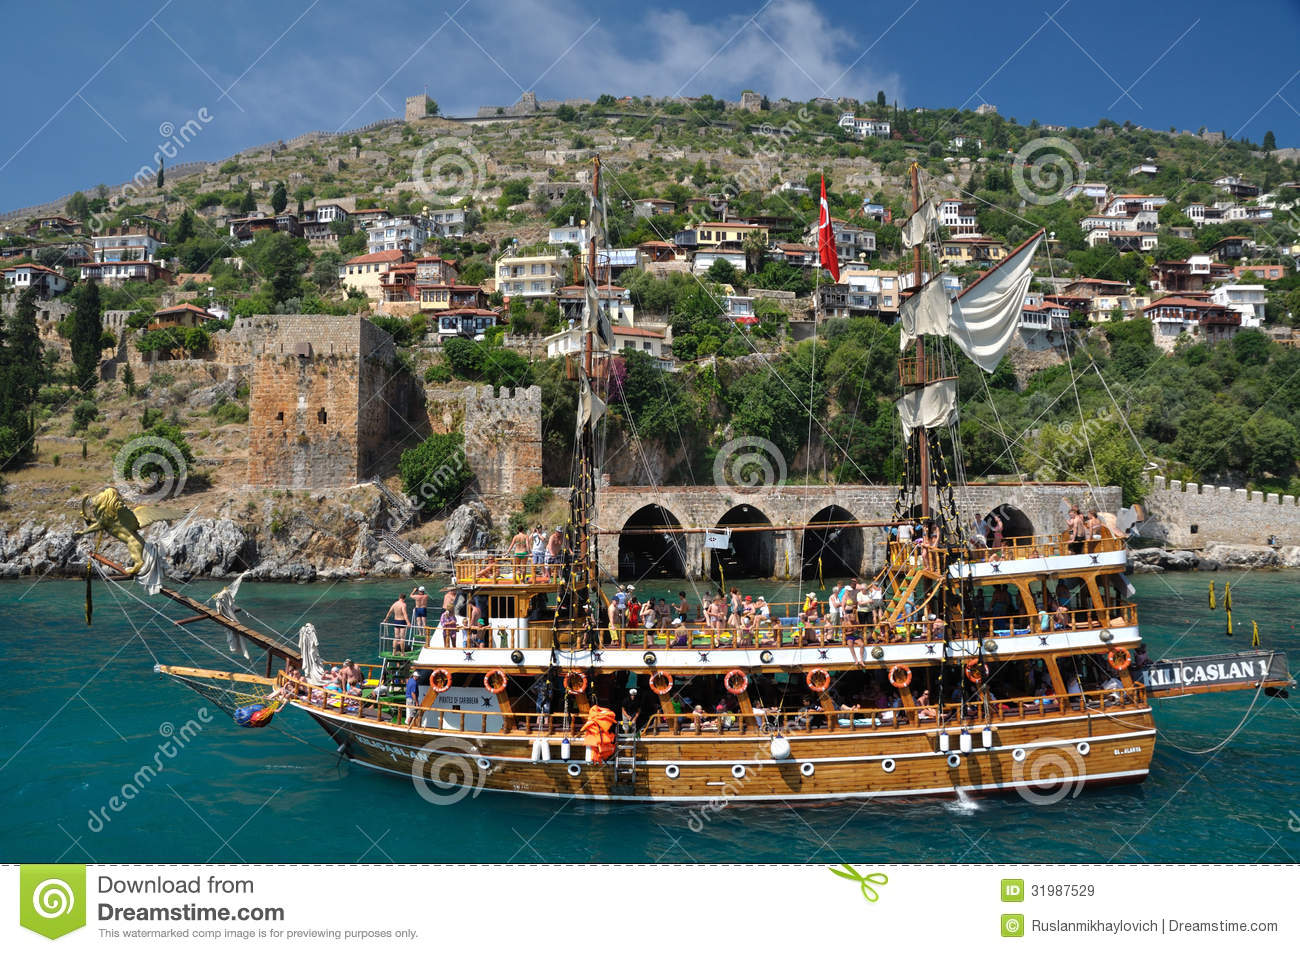 A yacht on the background of the fortress in Alanya